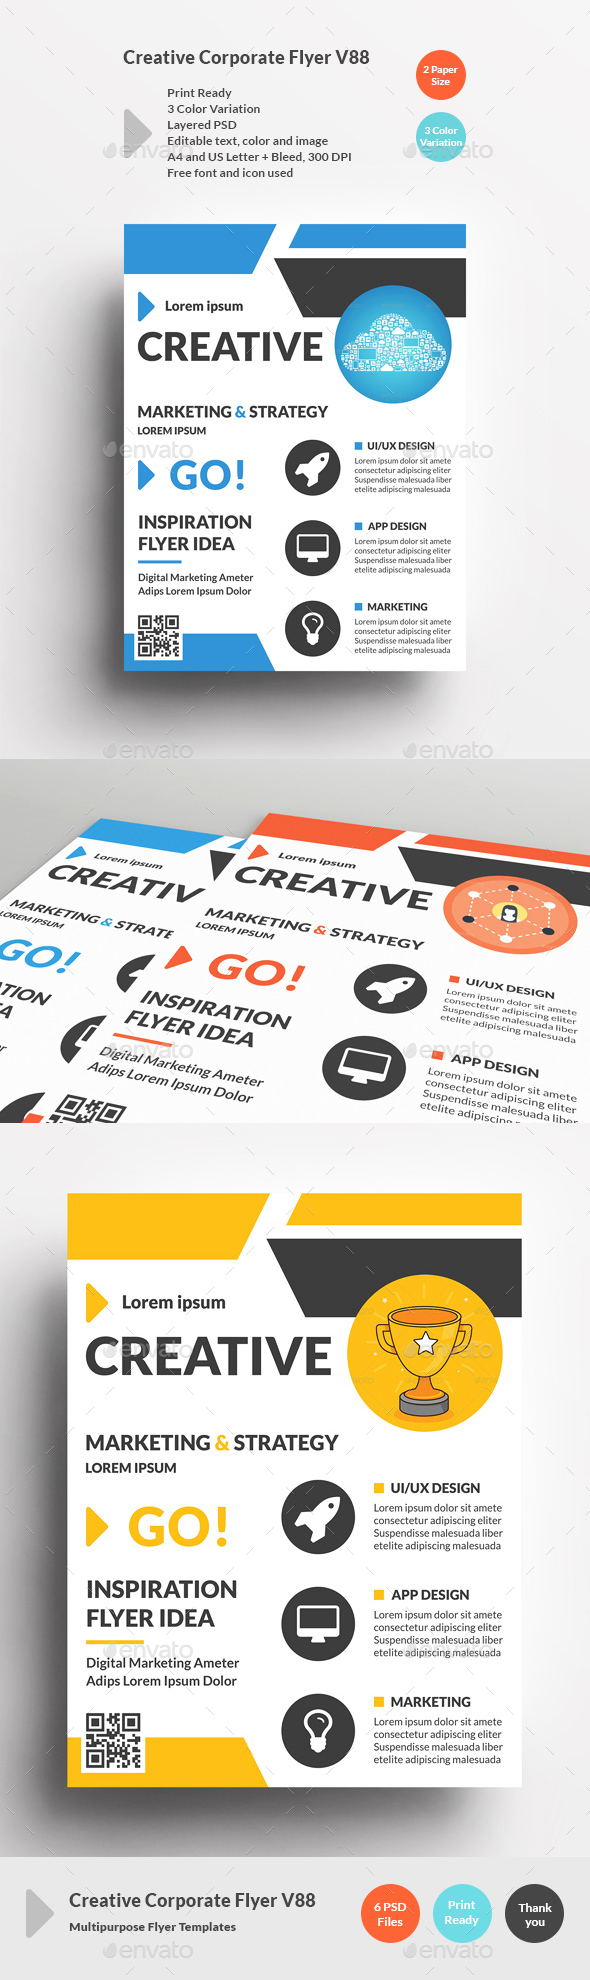 Creative Corporate Flyer V88 - Corporate Flyers